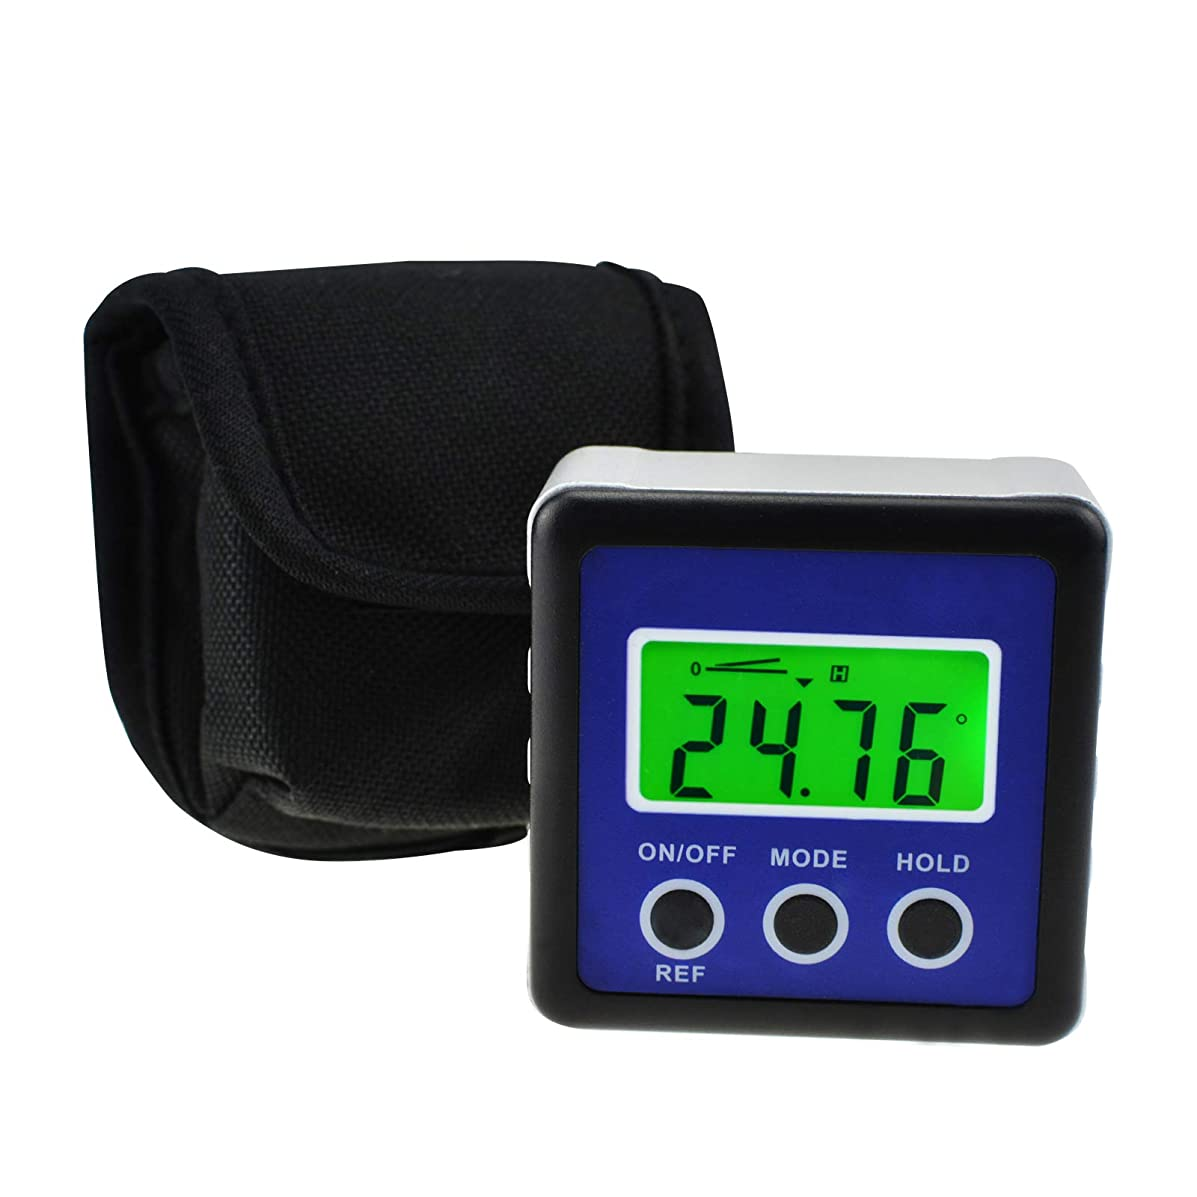 Digital Protractor Inclinometer Angle Finder Large LCD Display Relative Measurement Gauge Bevel Box with Built-in Magnets and Backlight